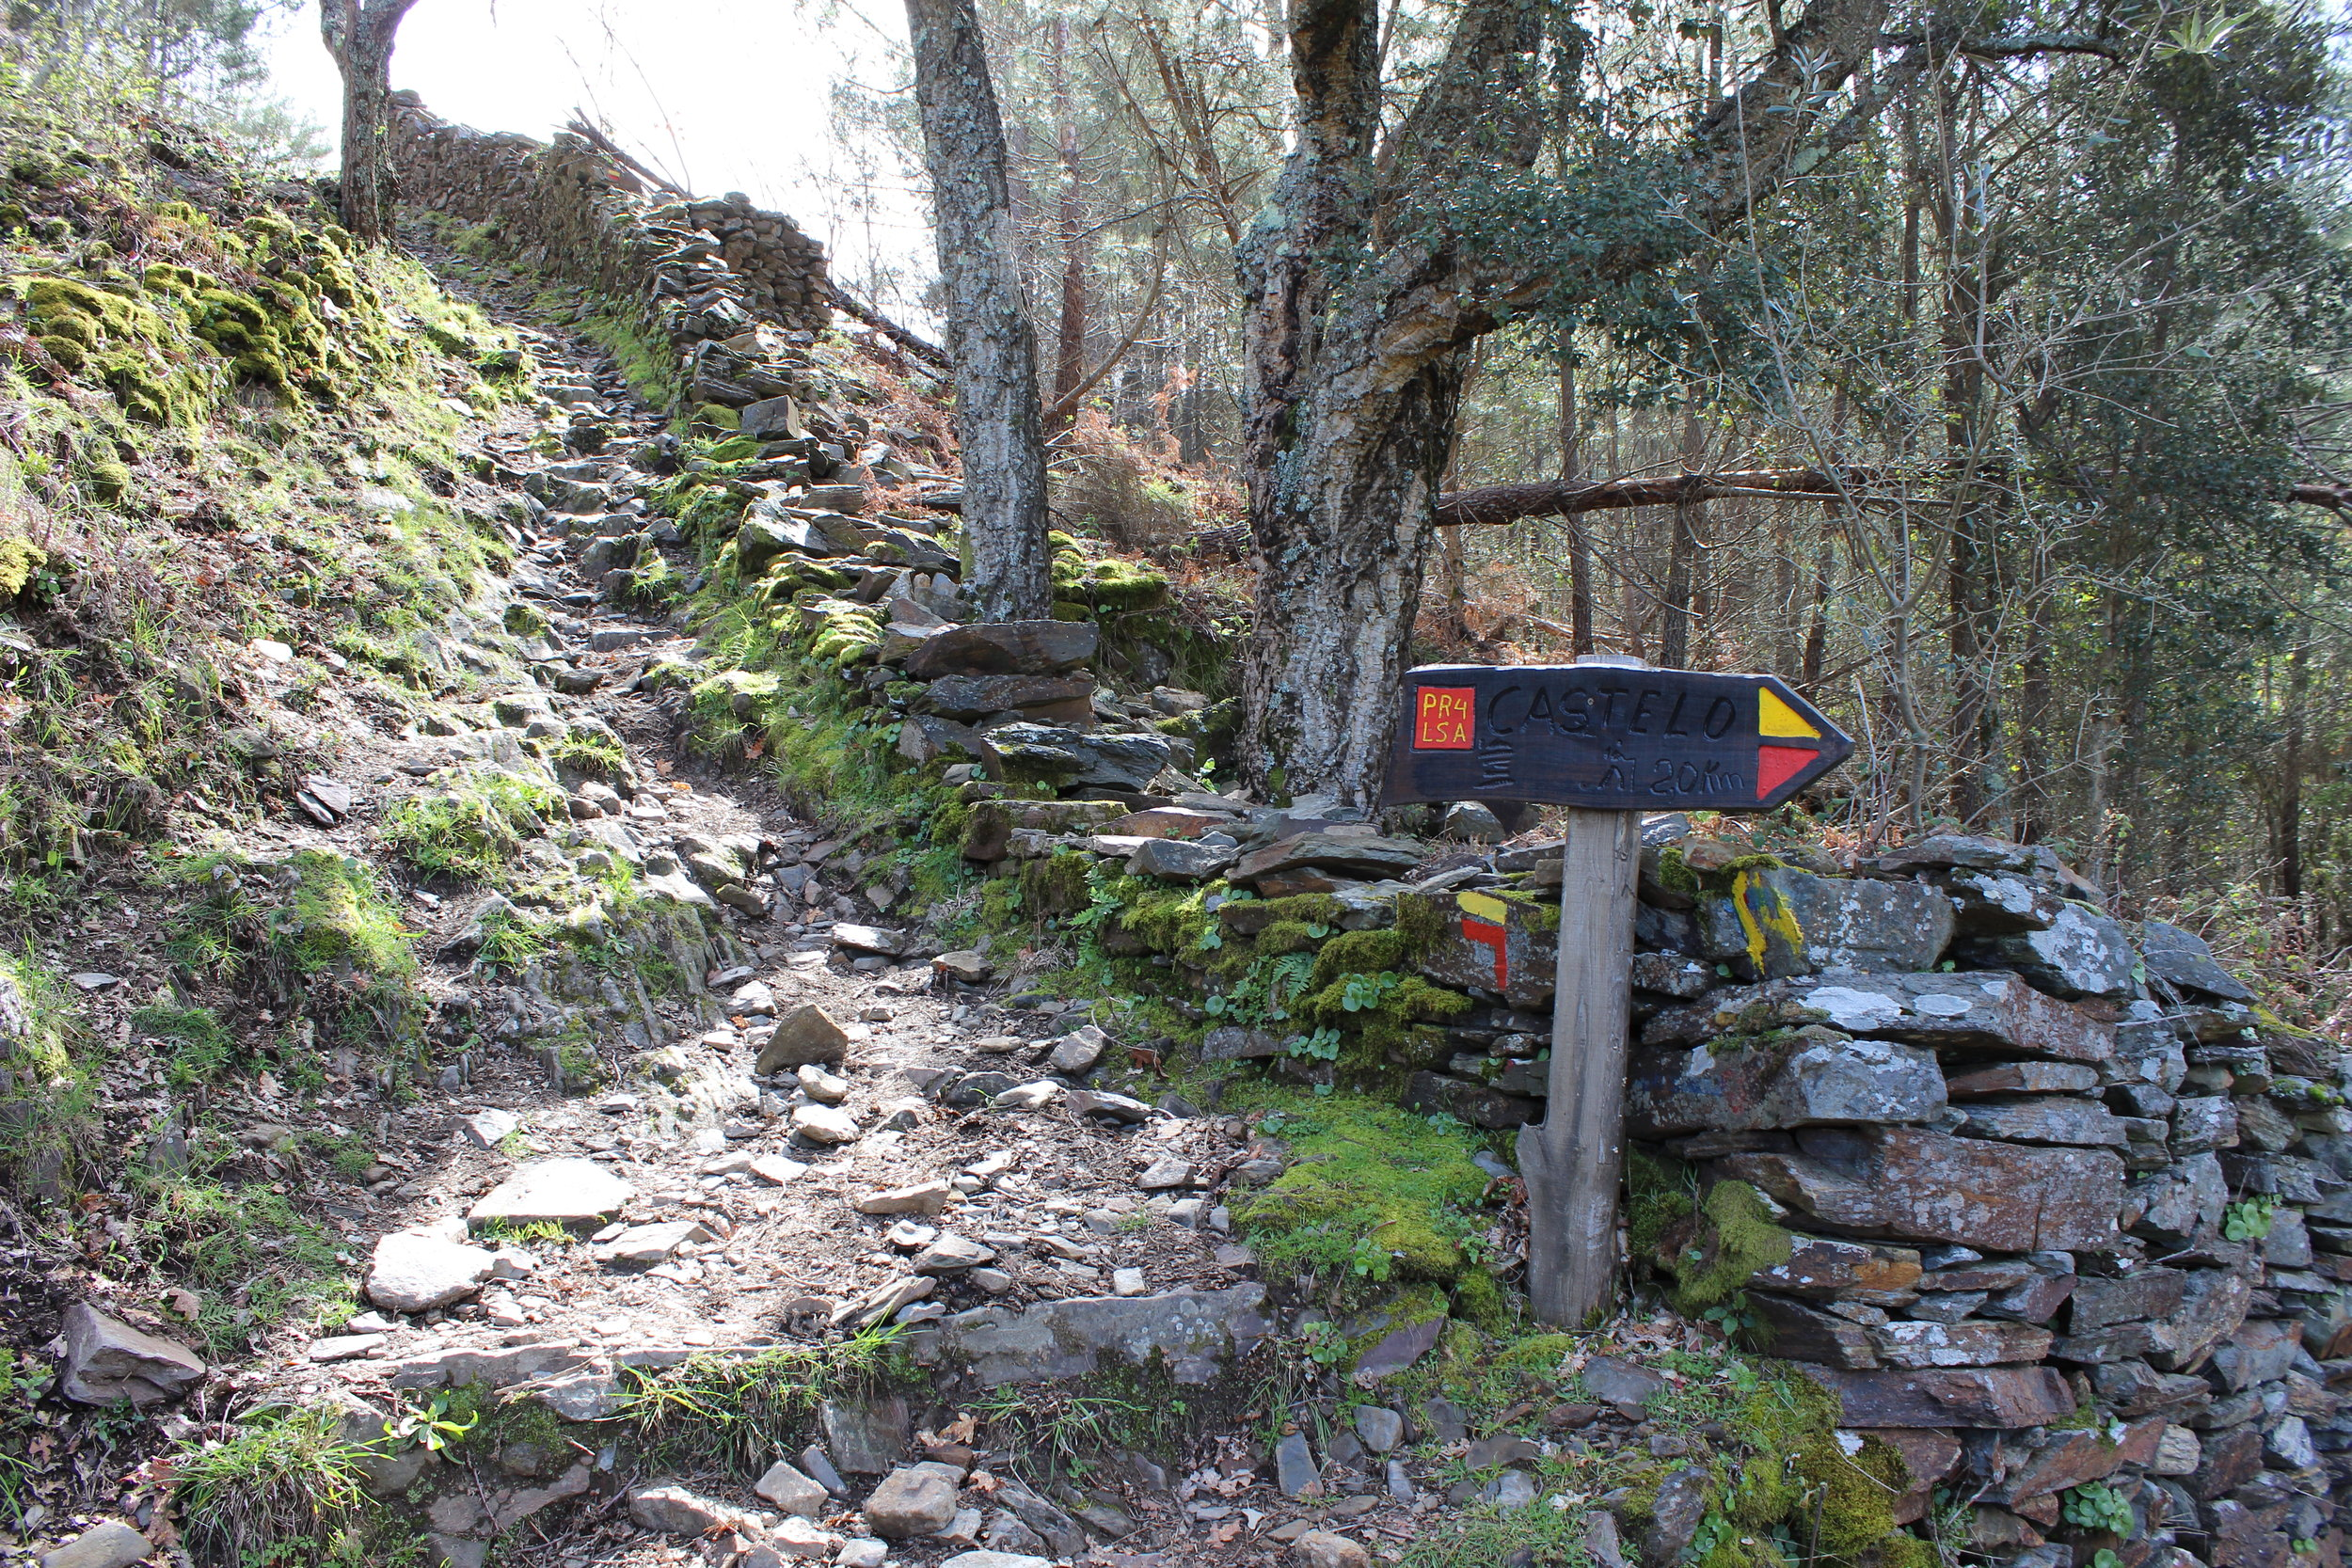 Trail markers, leading you to the castle and villages. The trail has a mixture of pavement, dirt, grassy and rocky walking paths